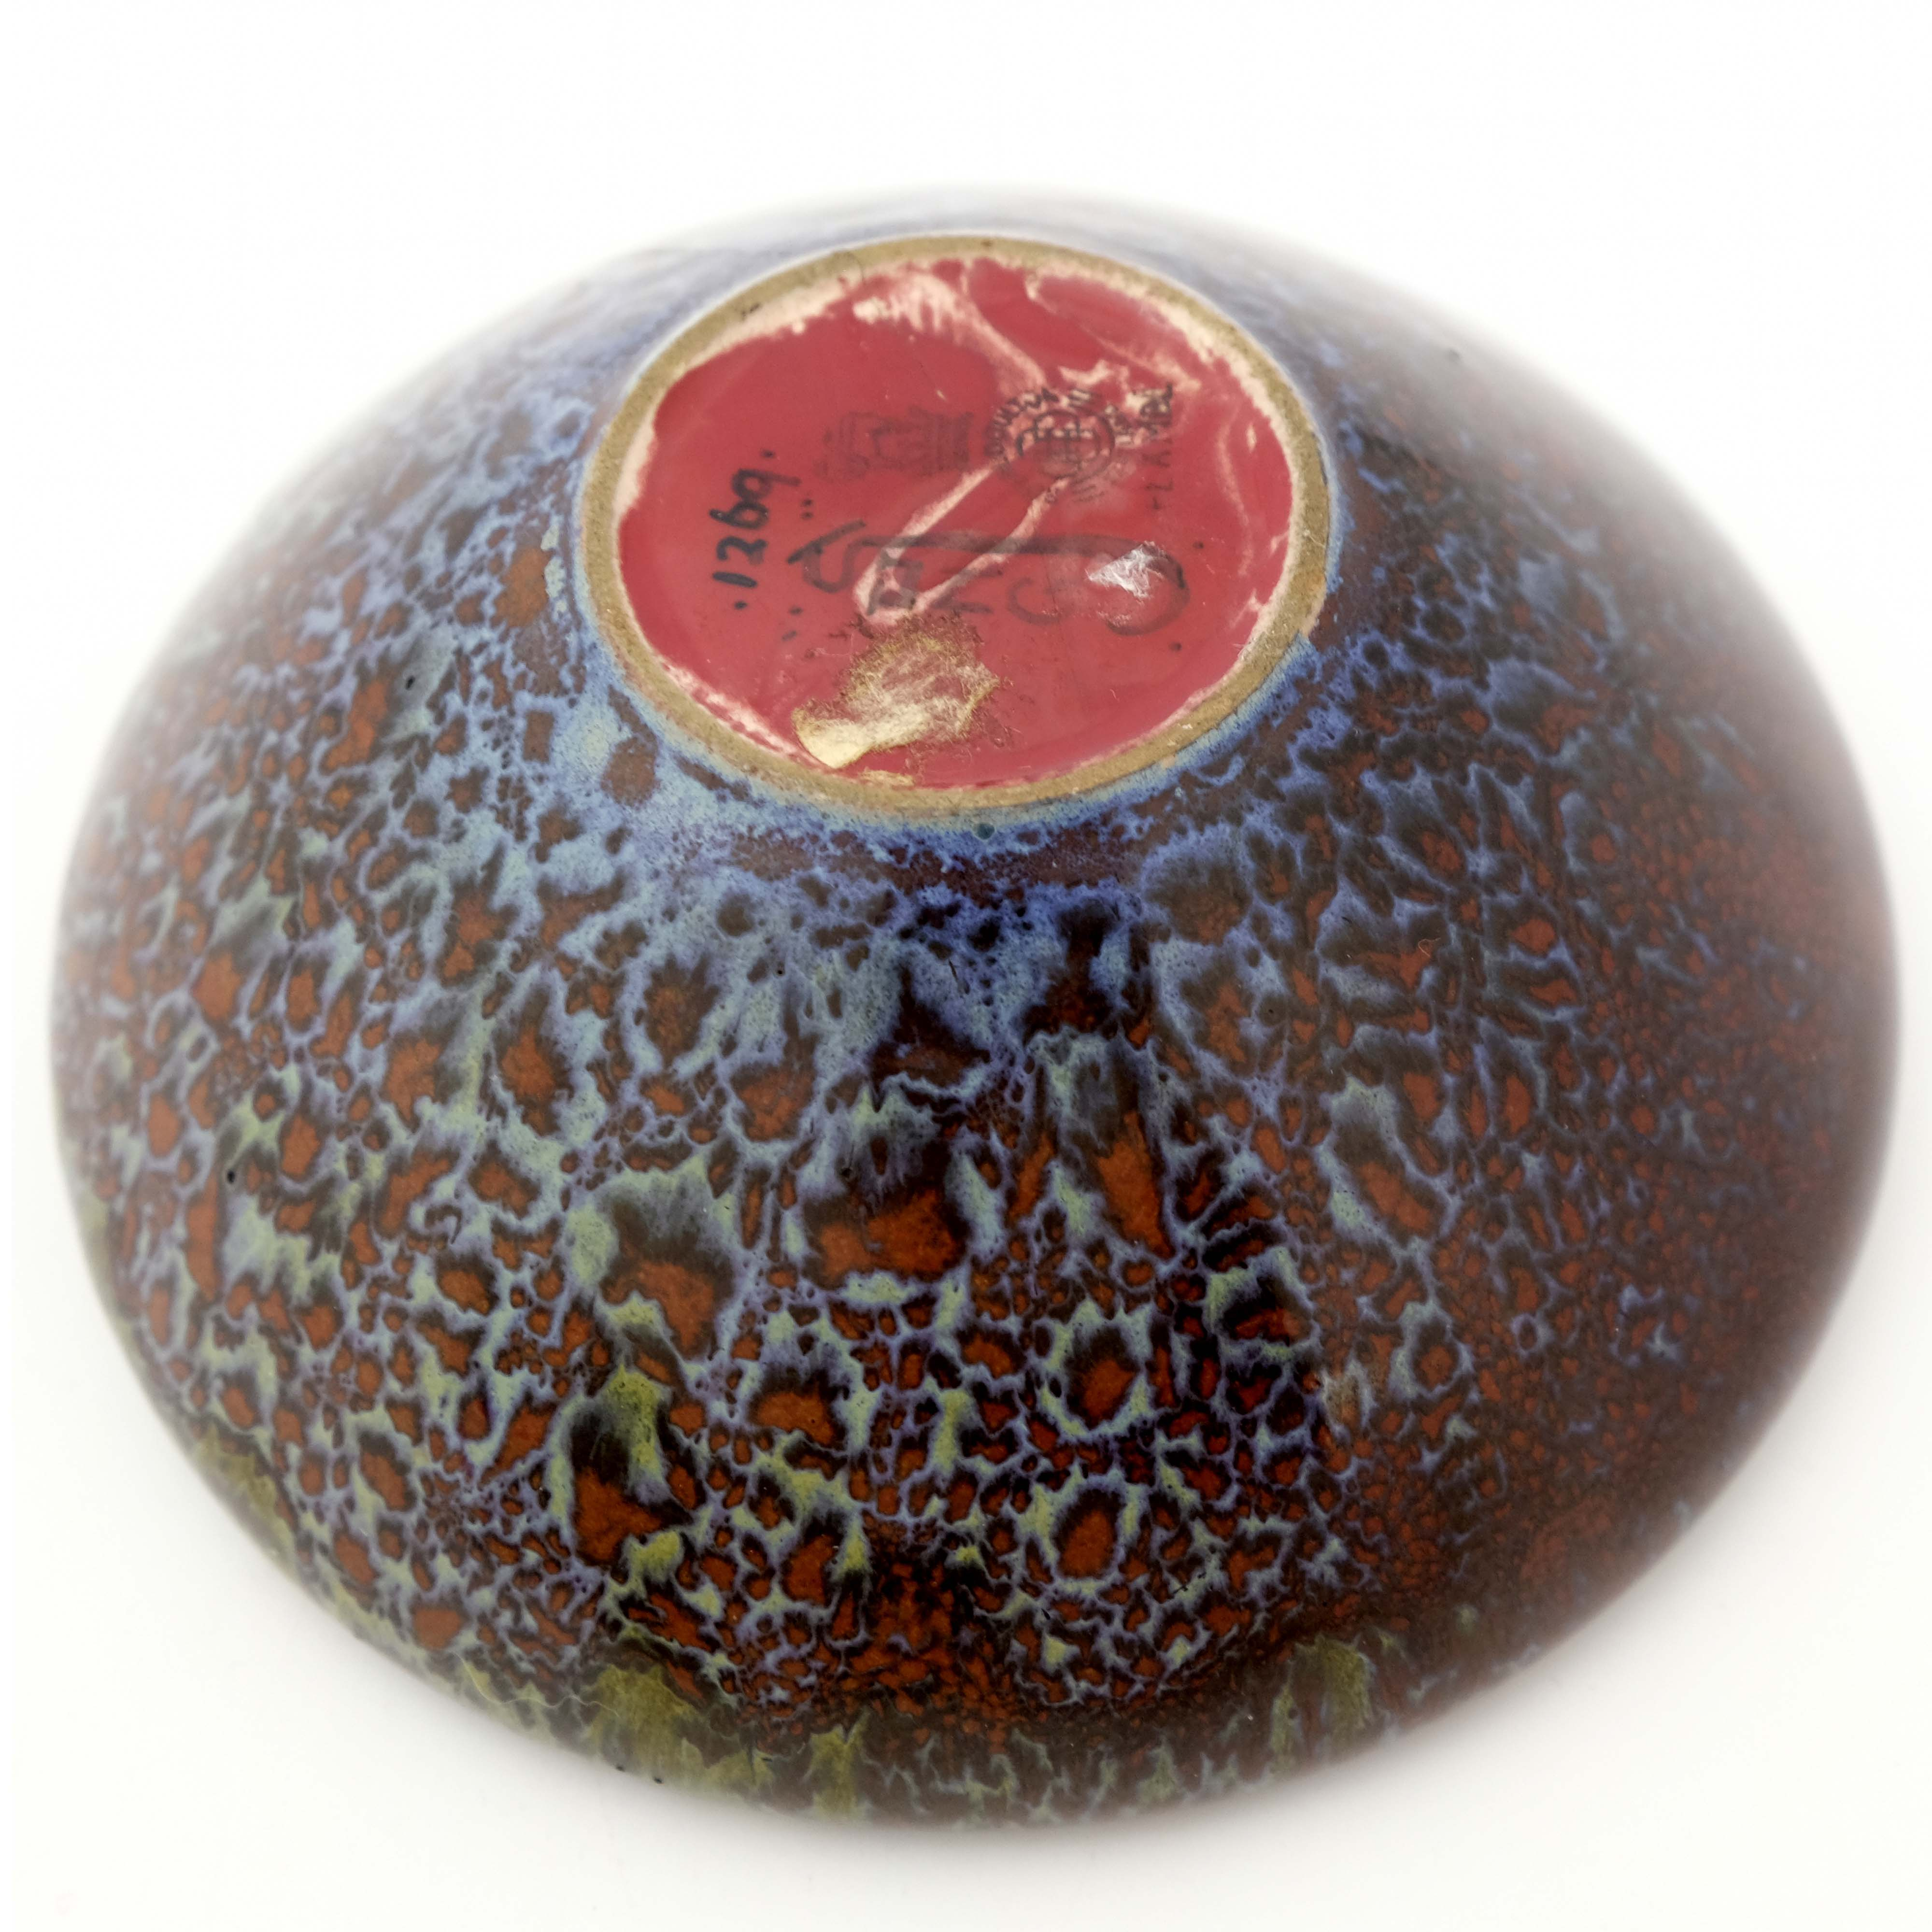 Charles Noke for Royal Doulton, a Sung Flambe bowl - Image 5 of 5